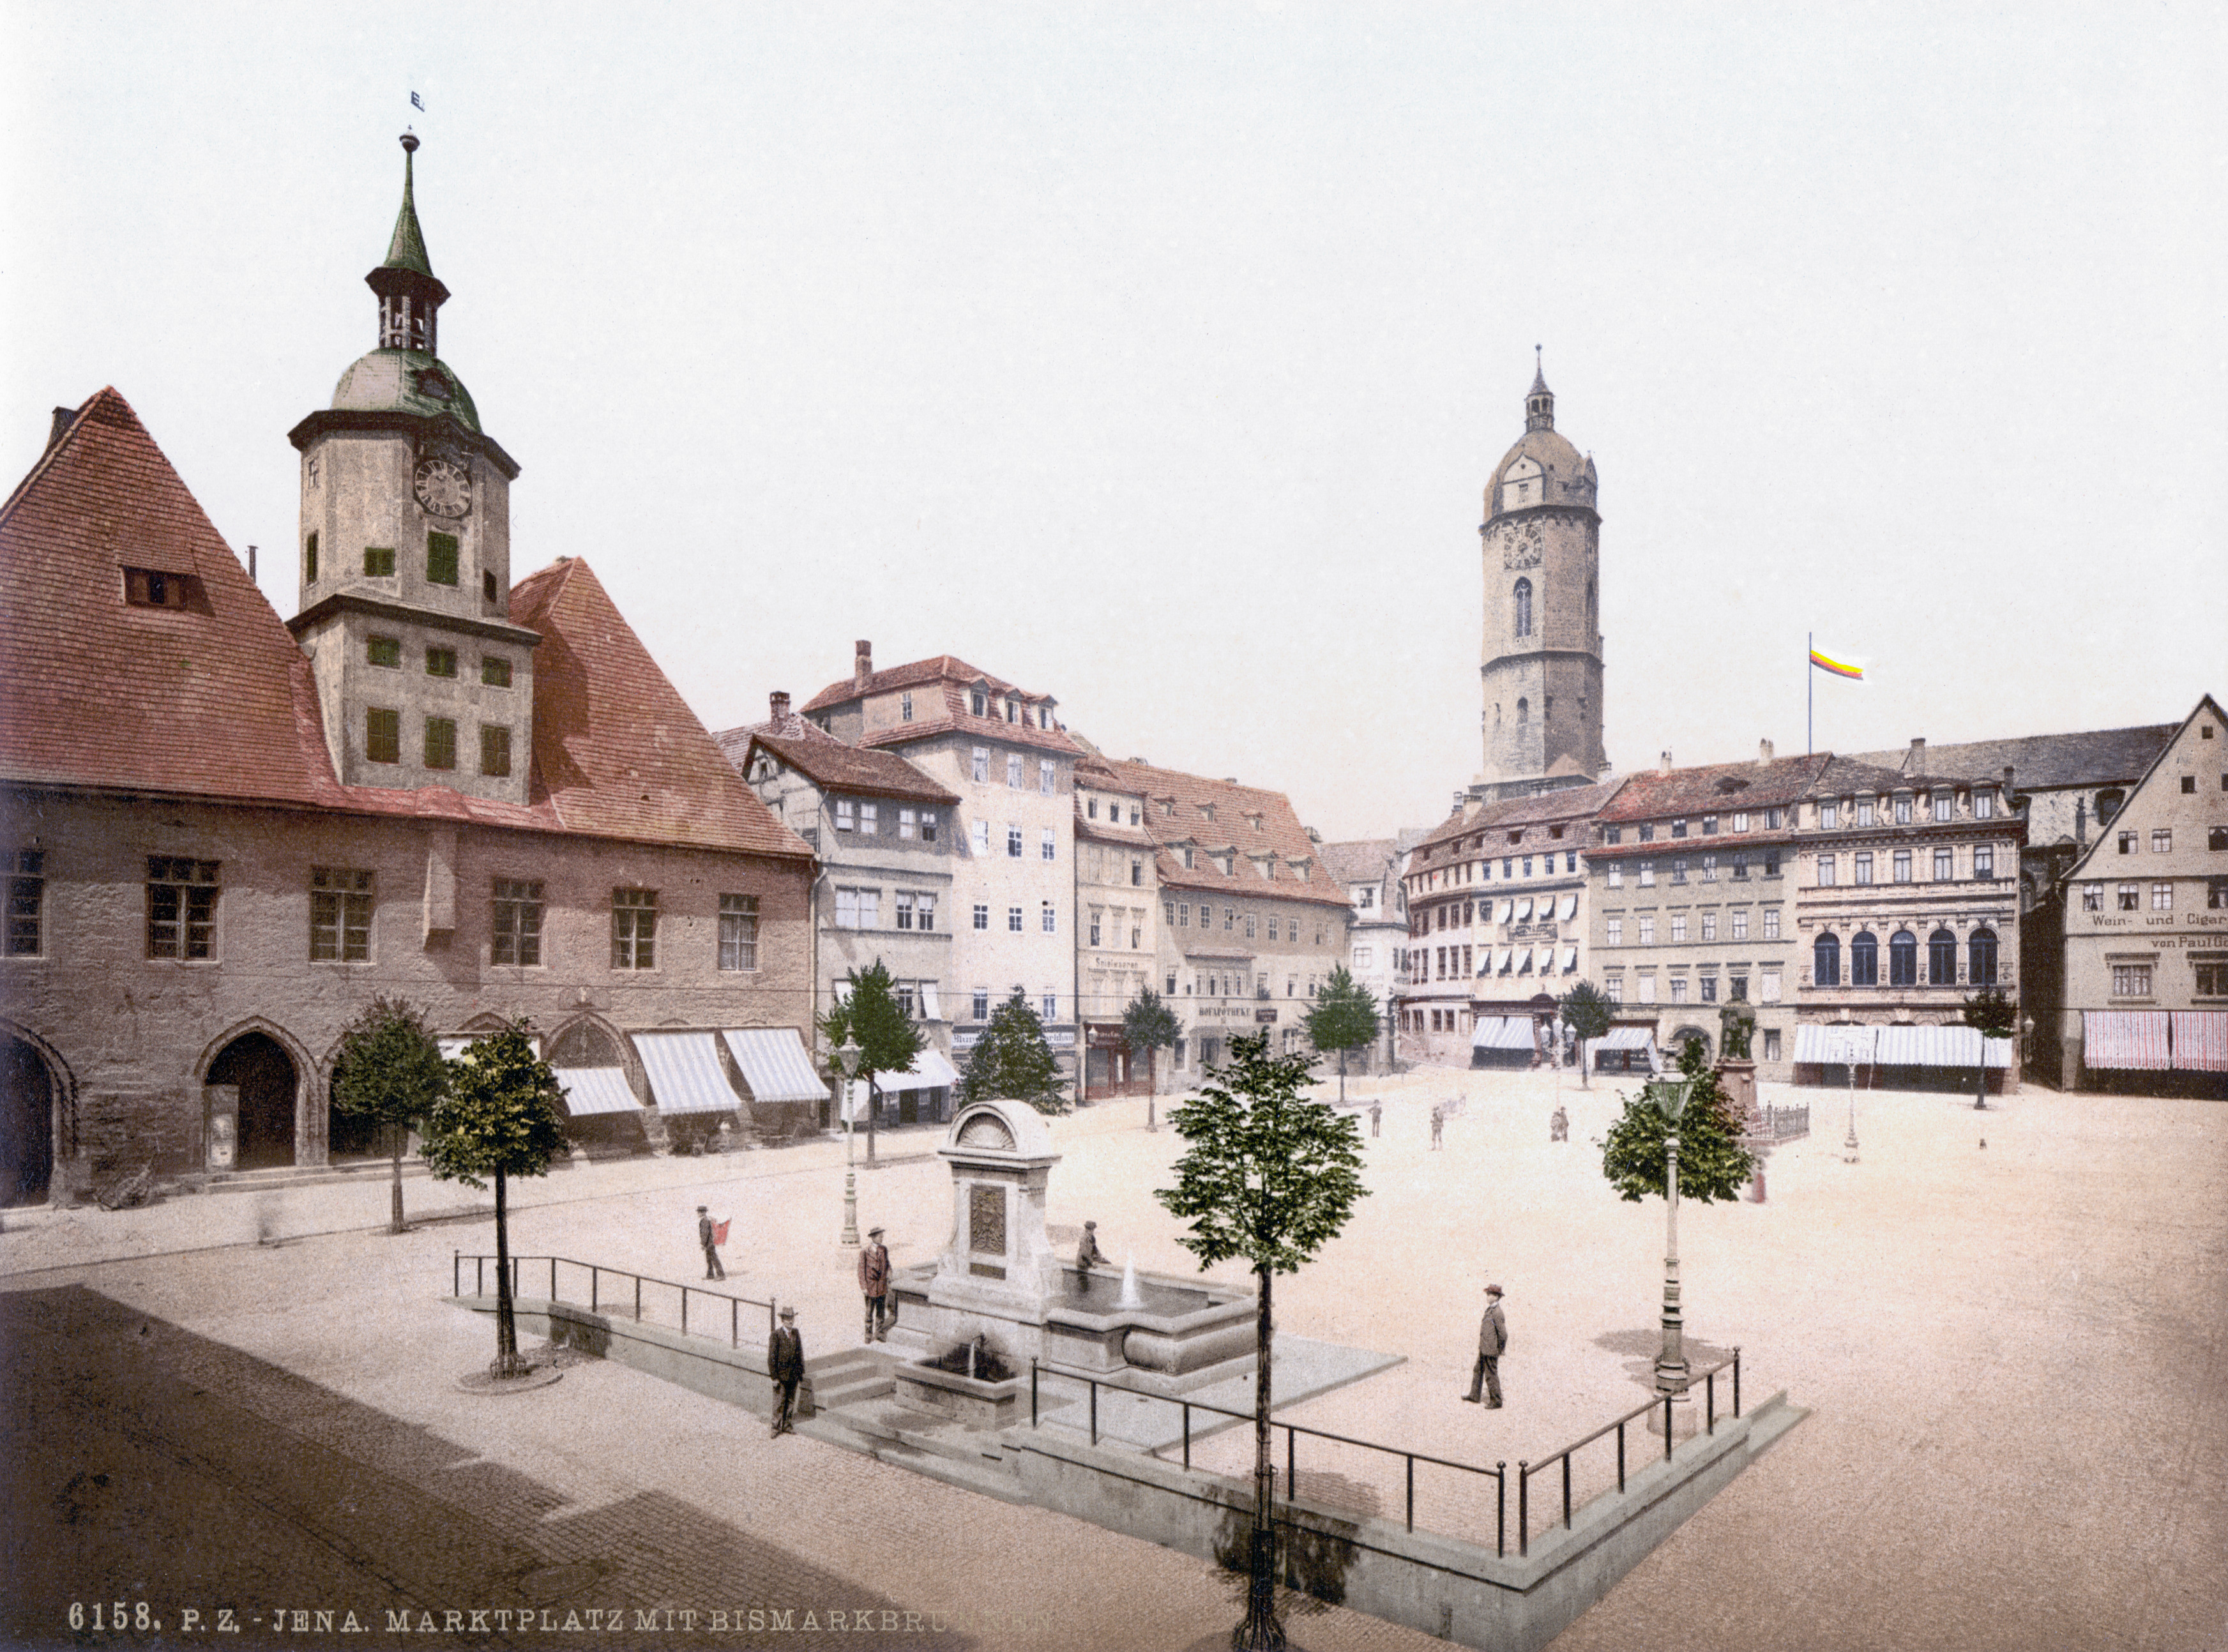 datei marktplatz bismarcksbrunnen jena wikipedia. Black Bedroom Furniture Sets. Home Design Ideas